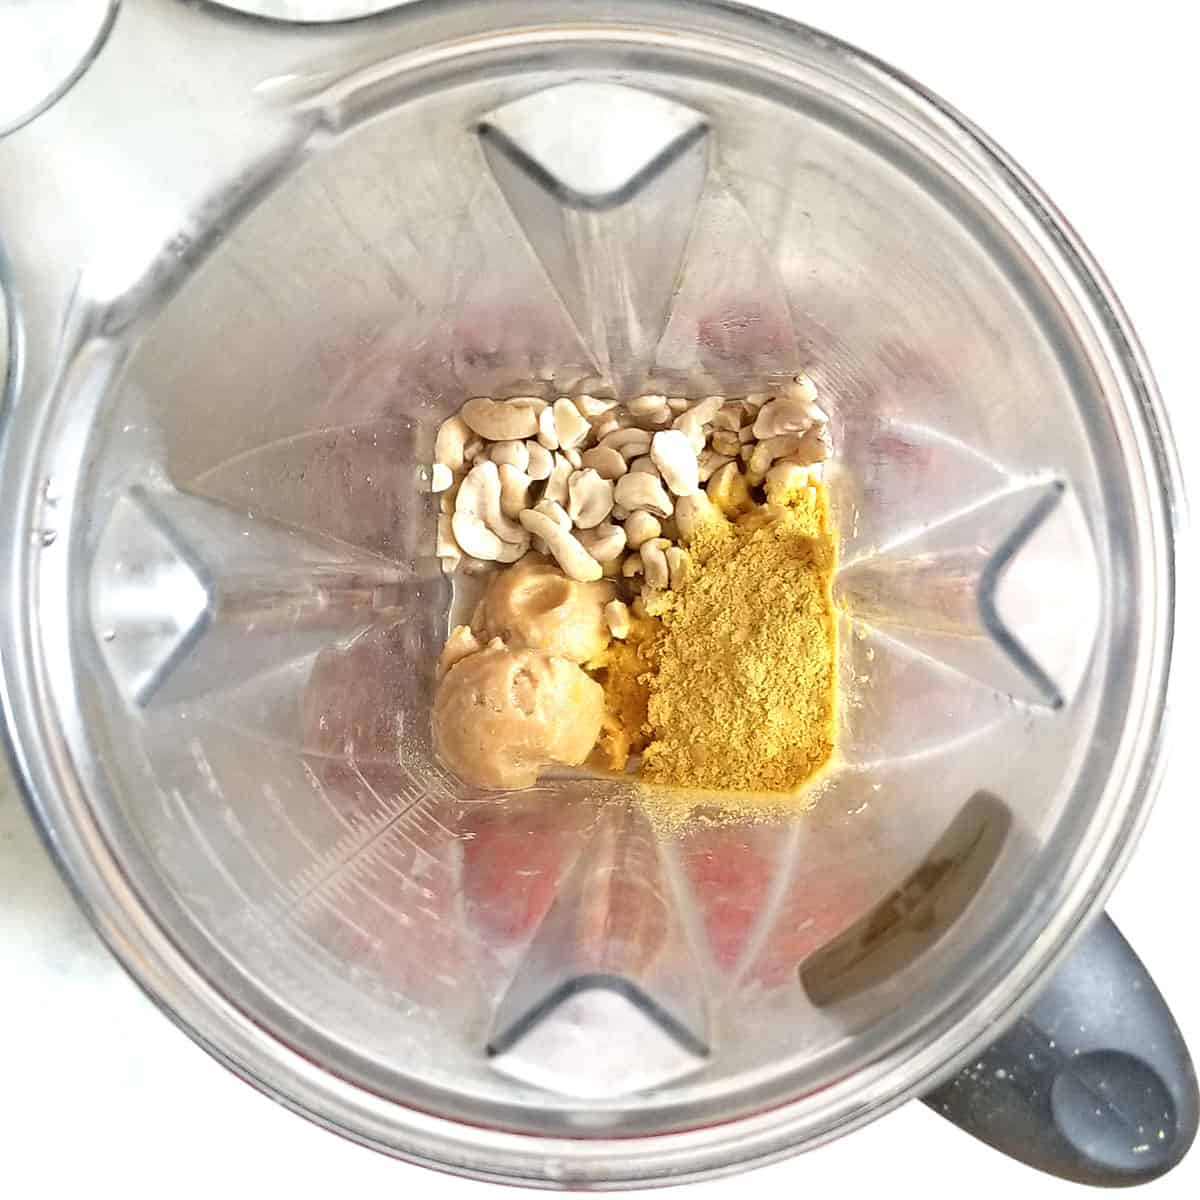 nutritional yeast, soaked cashews and other ingredients in blender pitcher to be blended into cashew cheese sauce for vegan mac and cheese